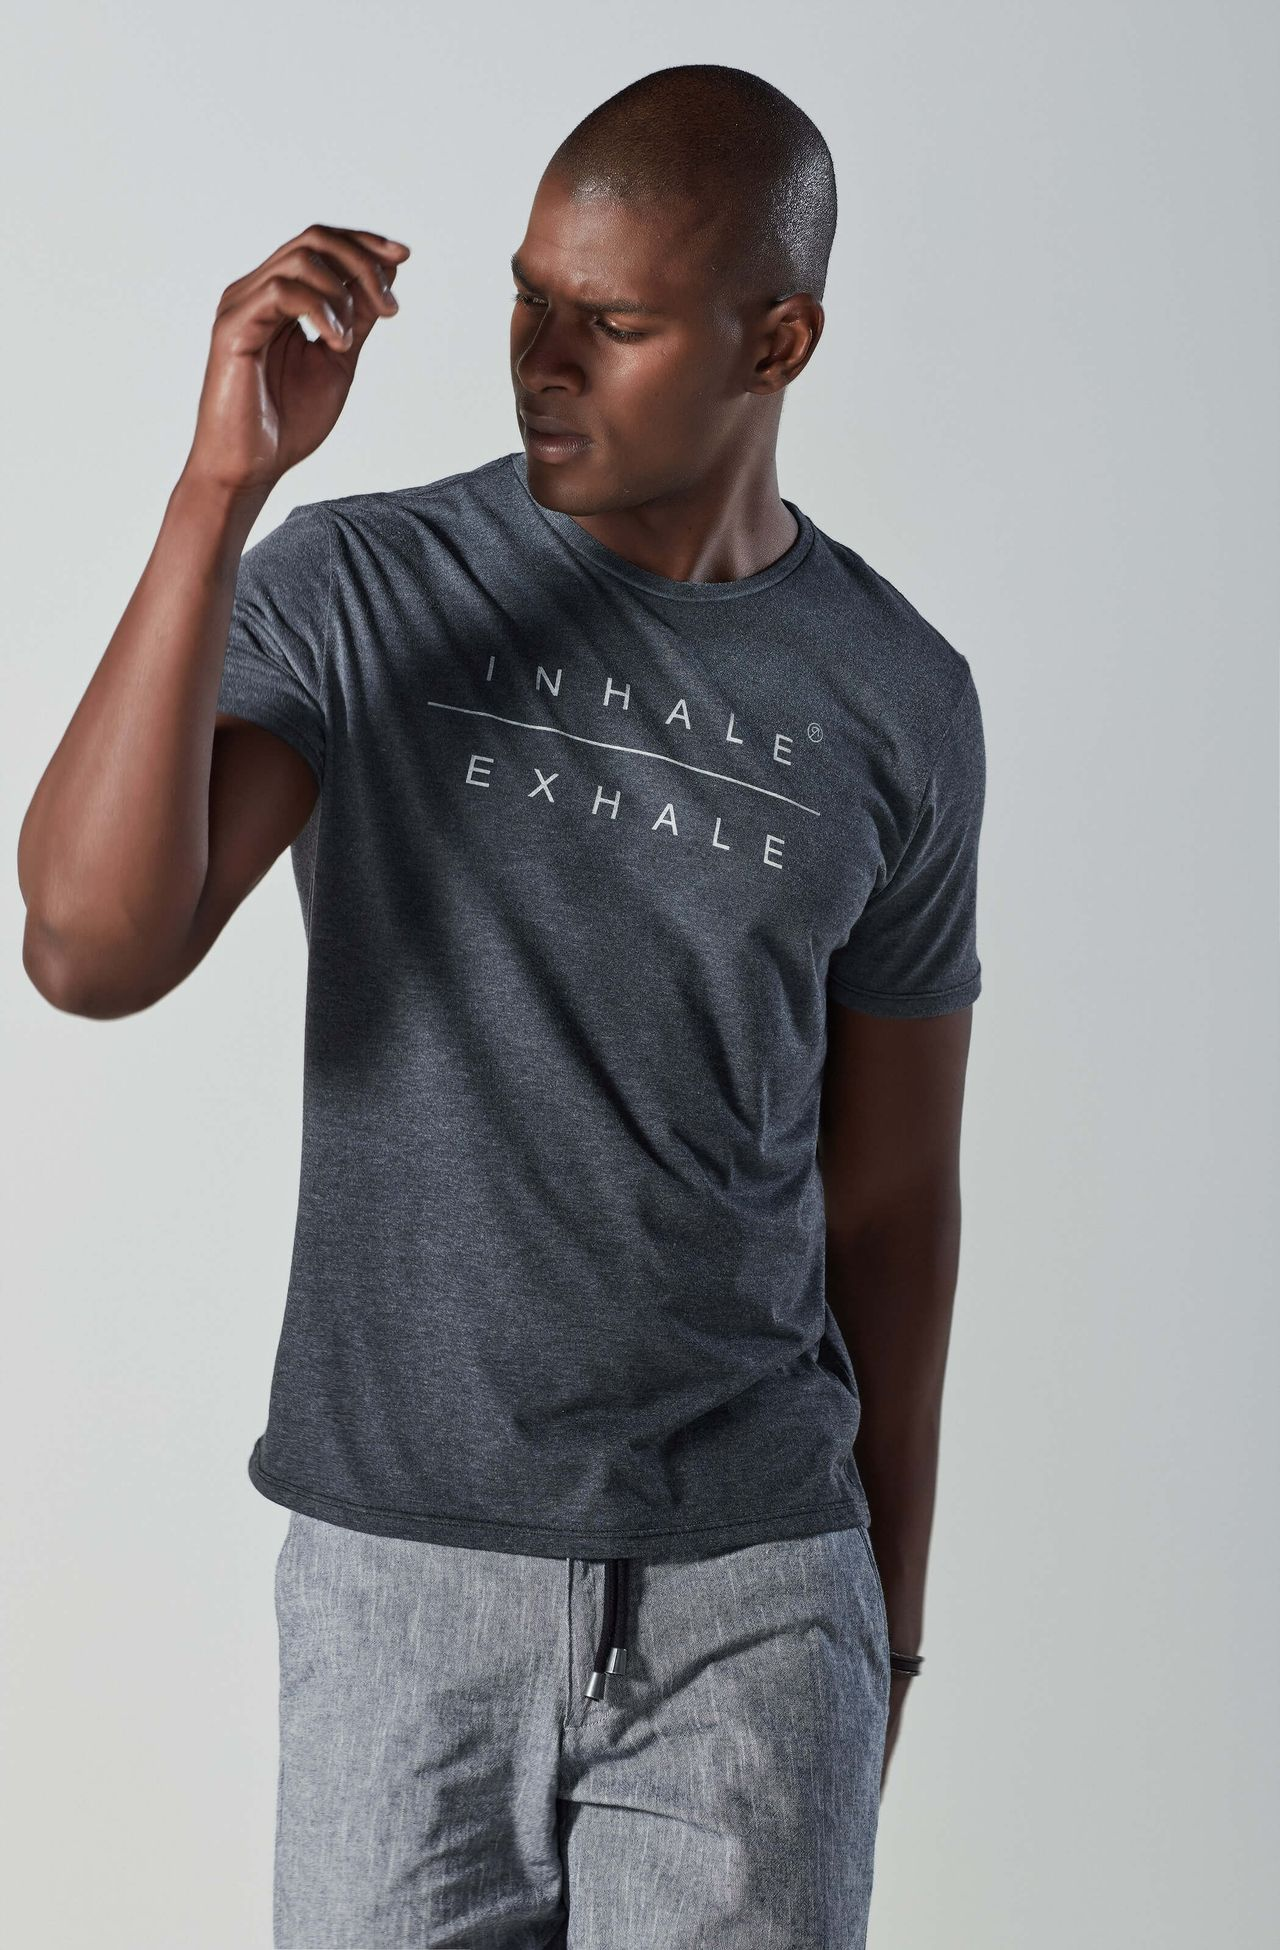 8353CCZ00029_985_1-TSHIRT-MC-INHALE-EXHALE